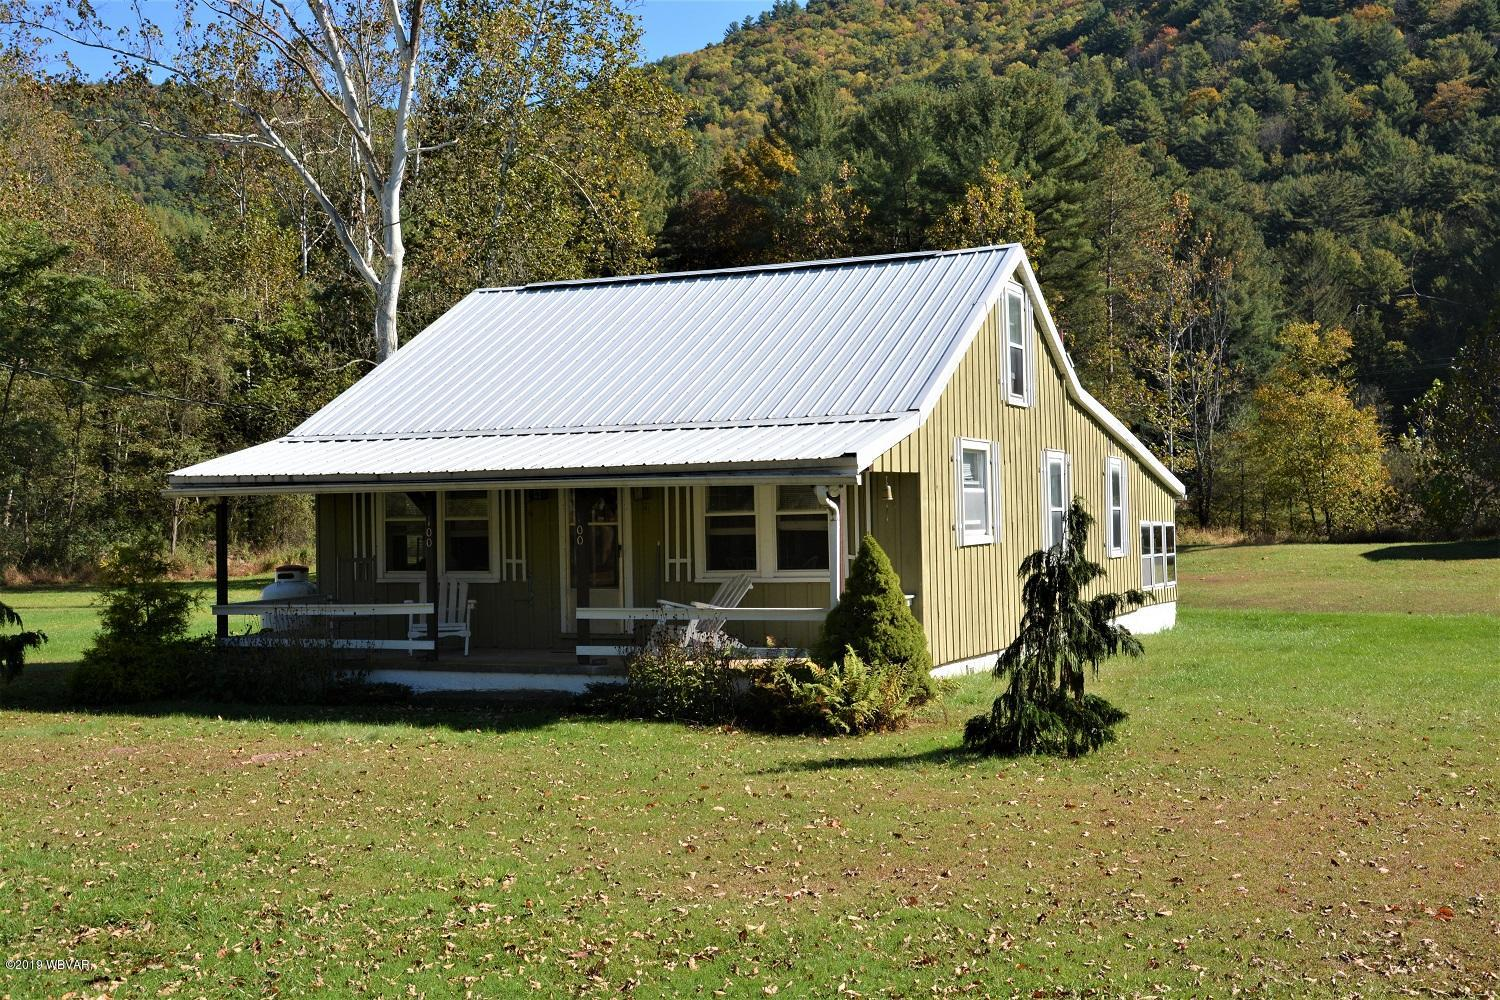 100 TIPPLE ROAD,English Center,PA 17776,5 Bedrooms Bedrooms,Cabin/vacation home,TIPPLE,WB-88810